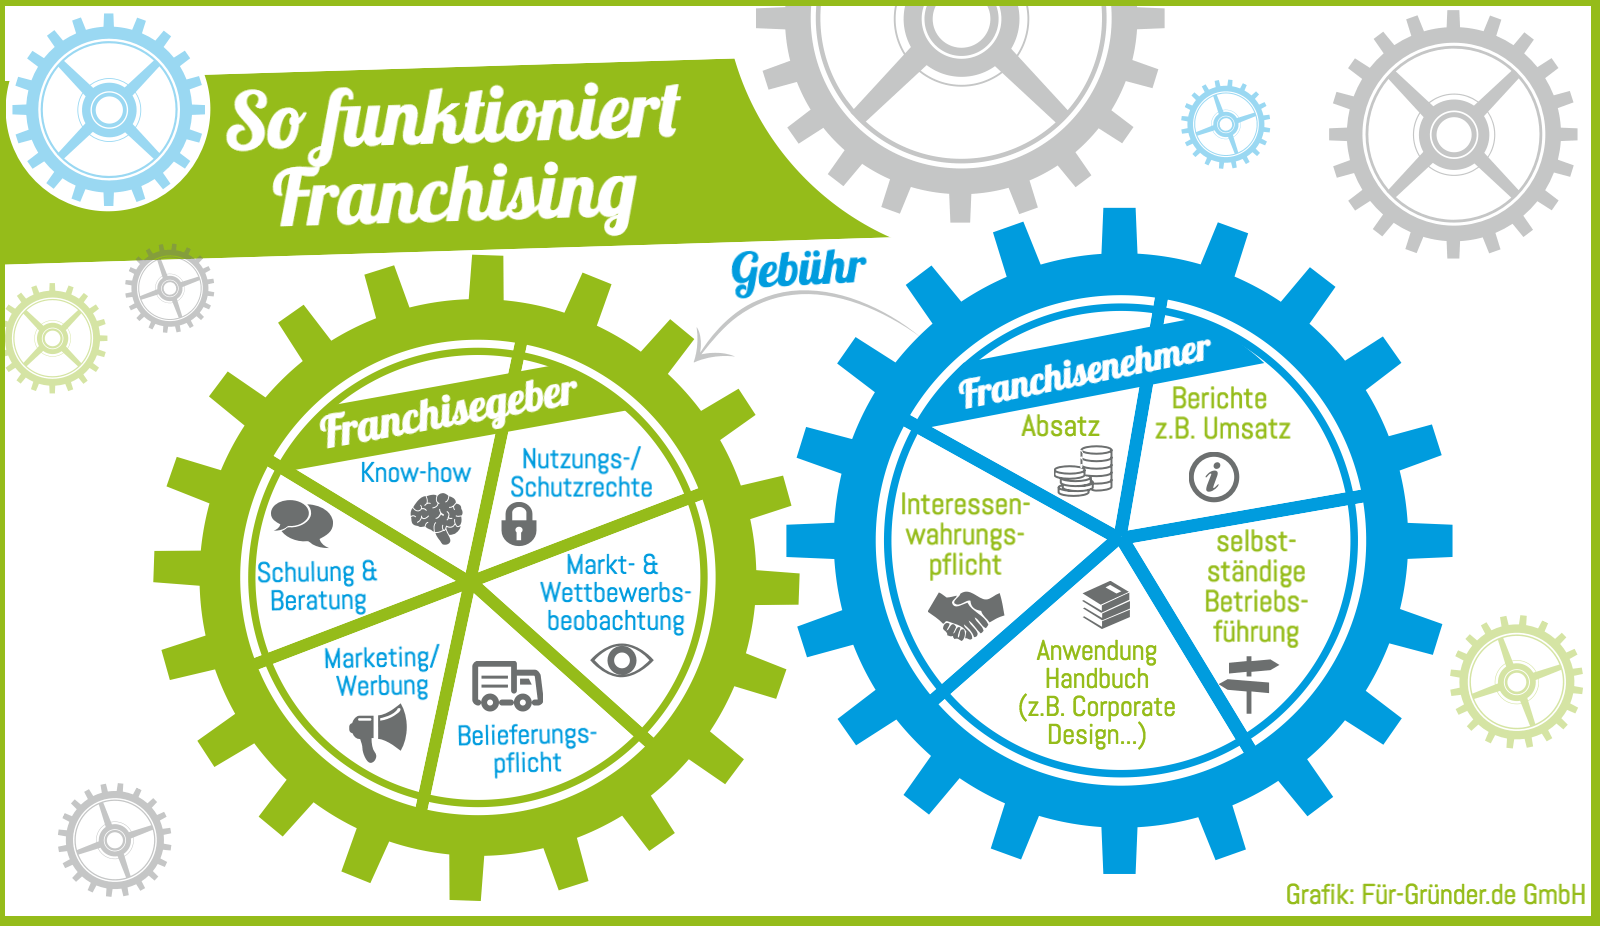 So funktioniert Franchising